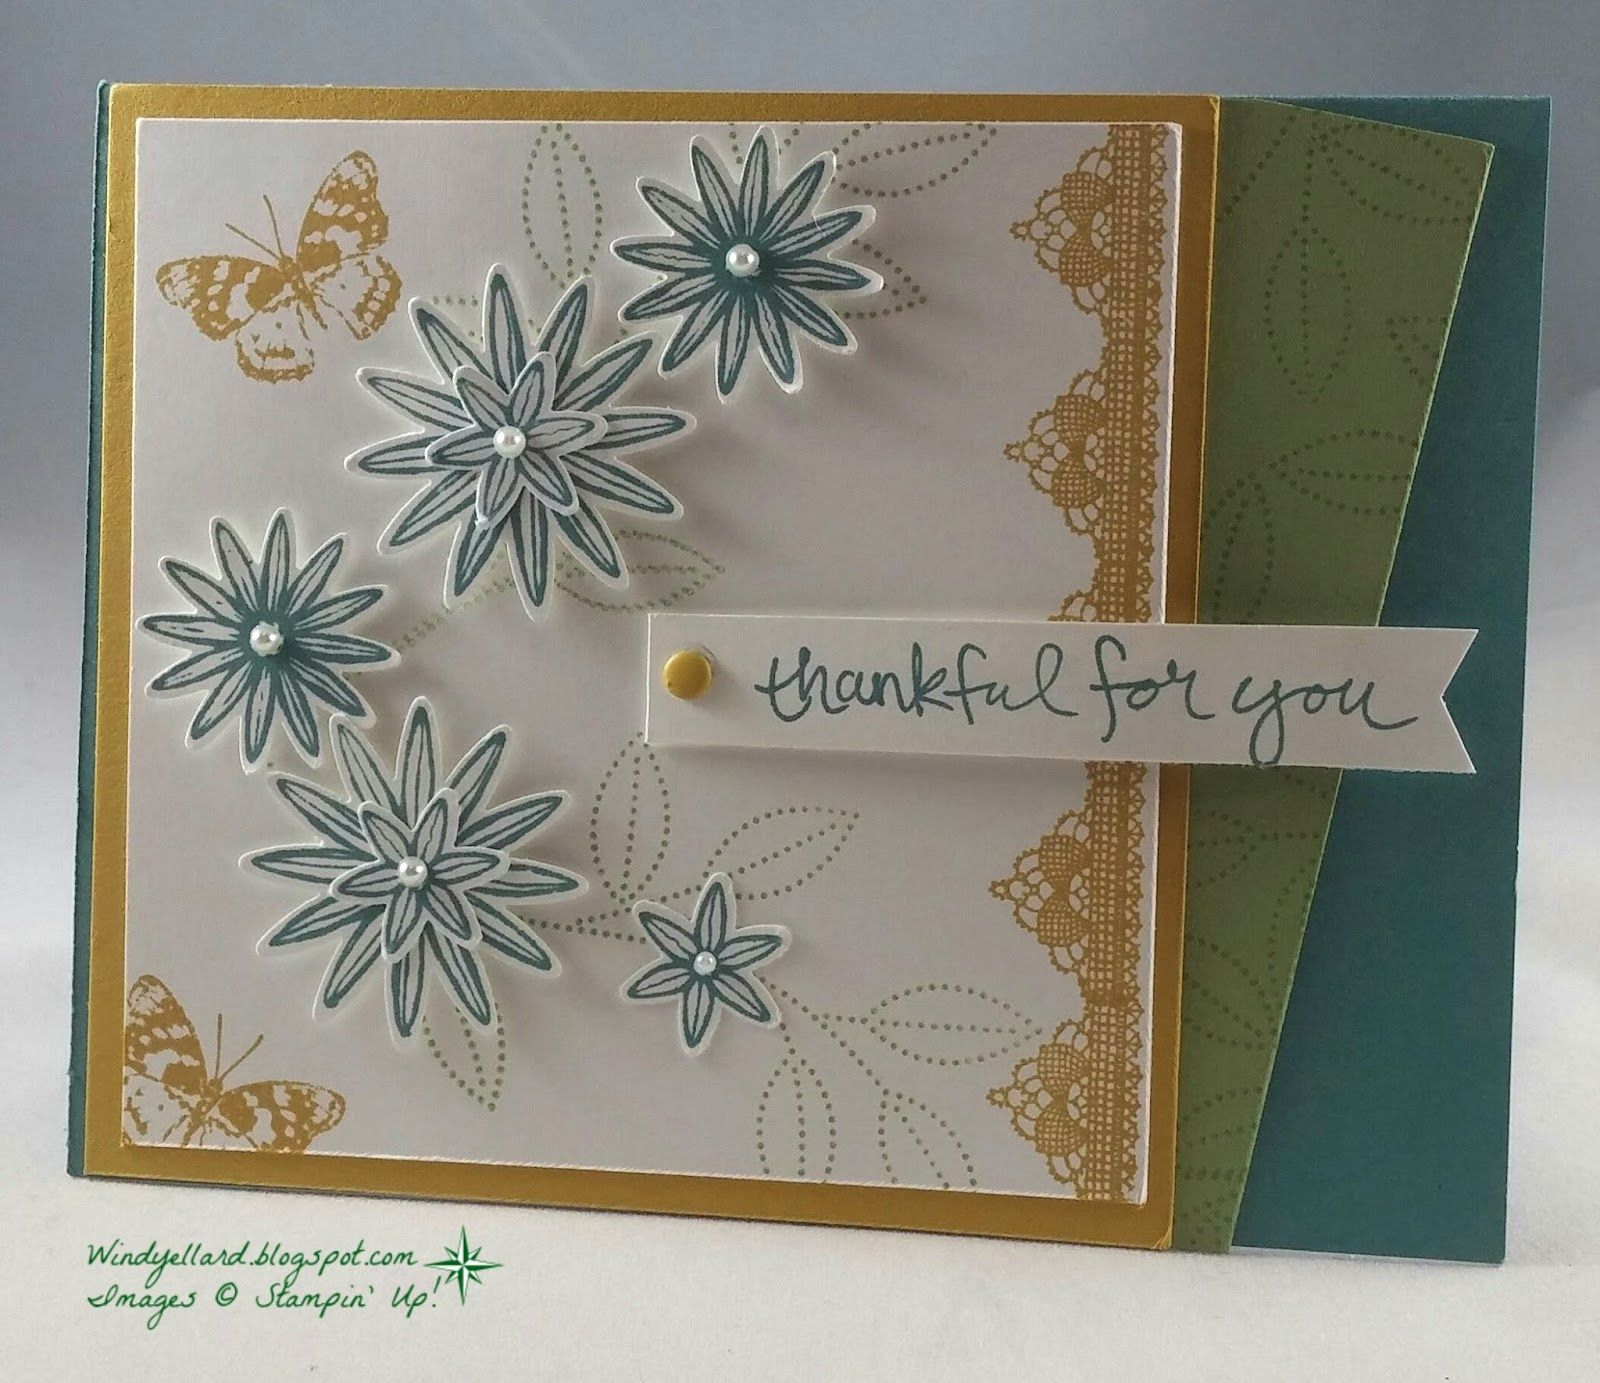 Windy's Wonderful Creations: FMS231 Thankful For You!